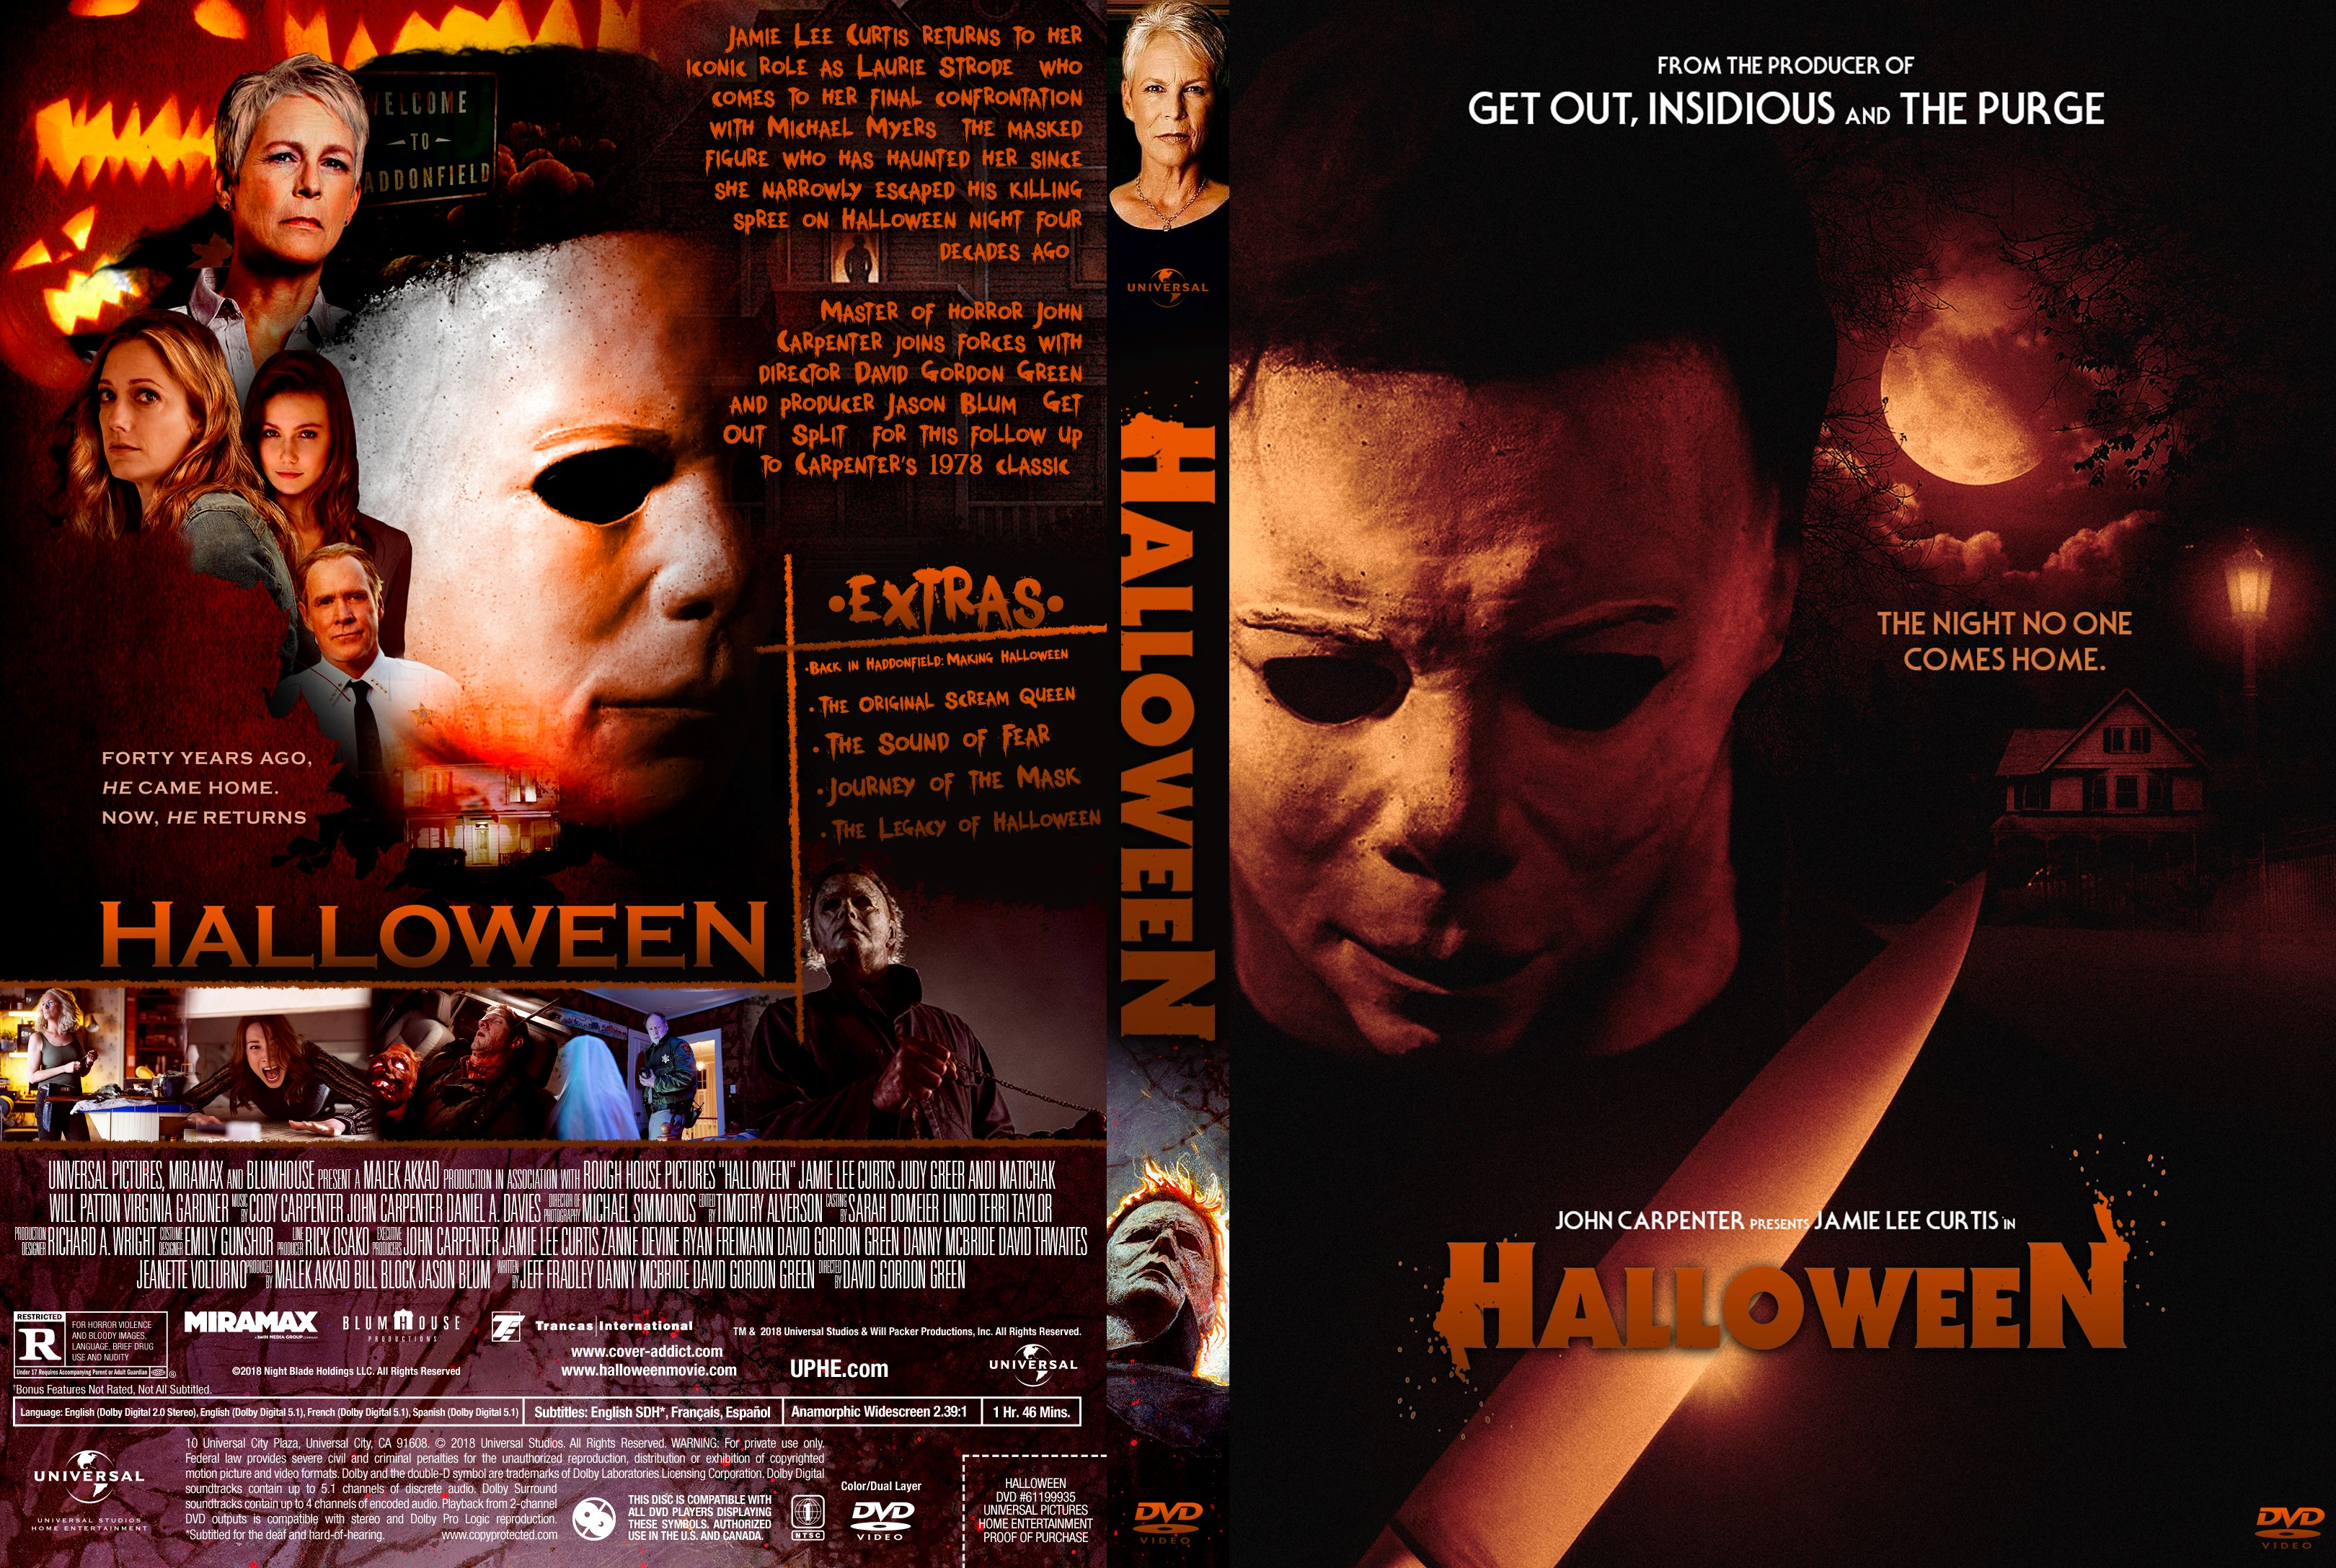 Halloween 2018 Movie Poster: Halloween DVD Cover